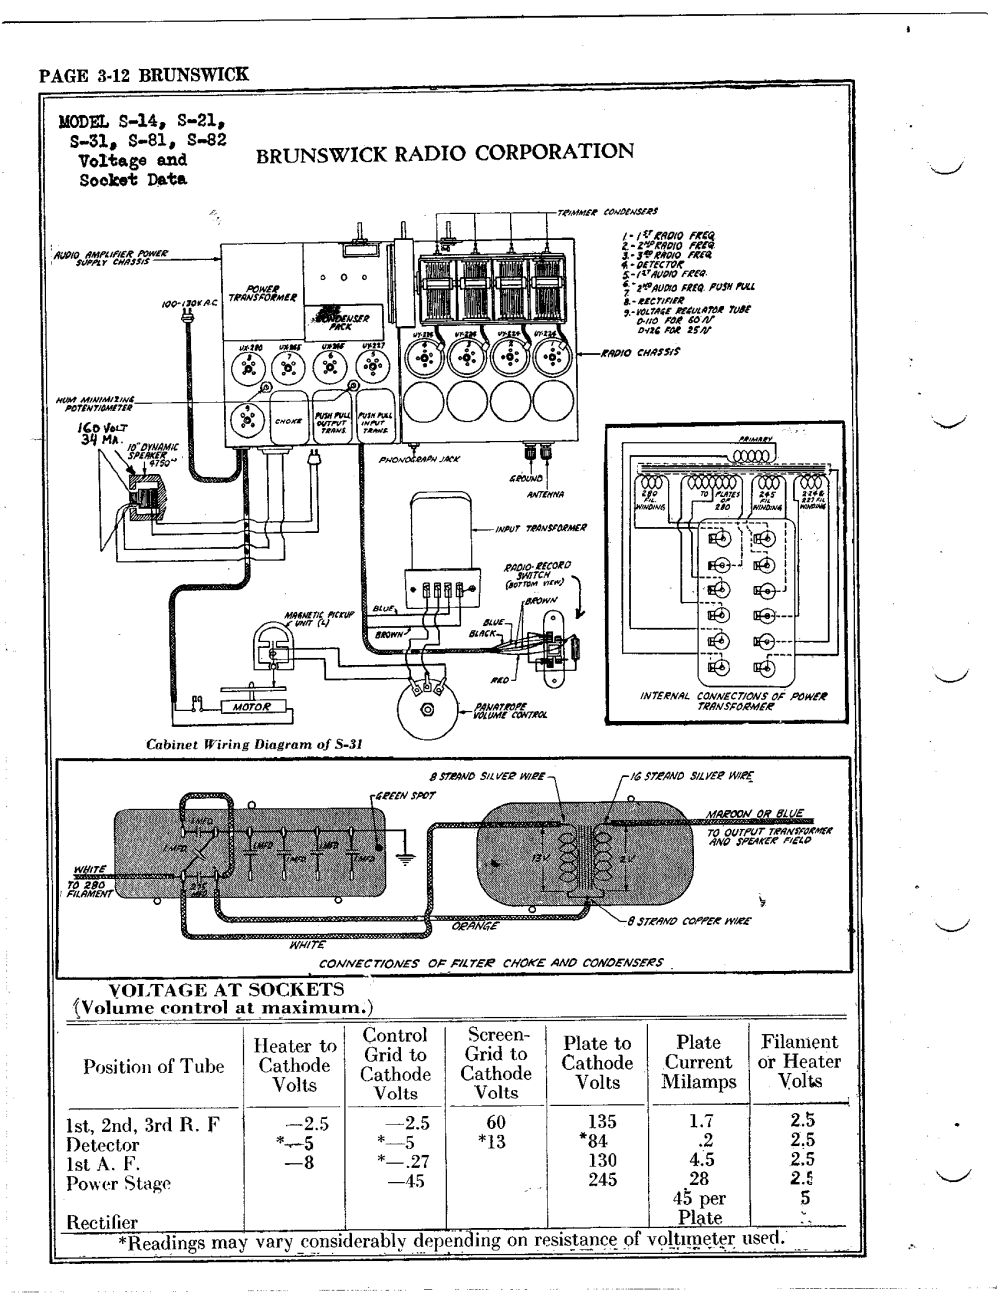 medium resolution of brunswick model a wiring diagram ford electric brake wiring diagram kenwood kdc bt555u kenwood kdc 2025 wiring diagram model